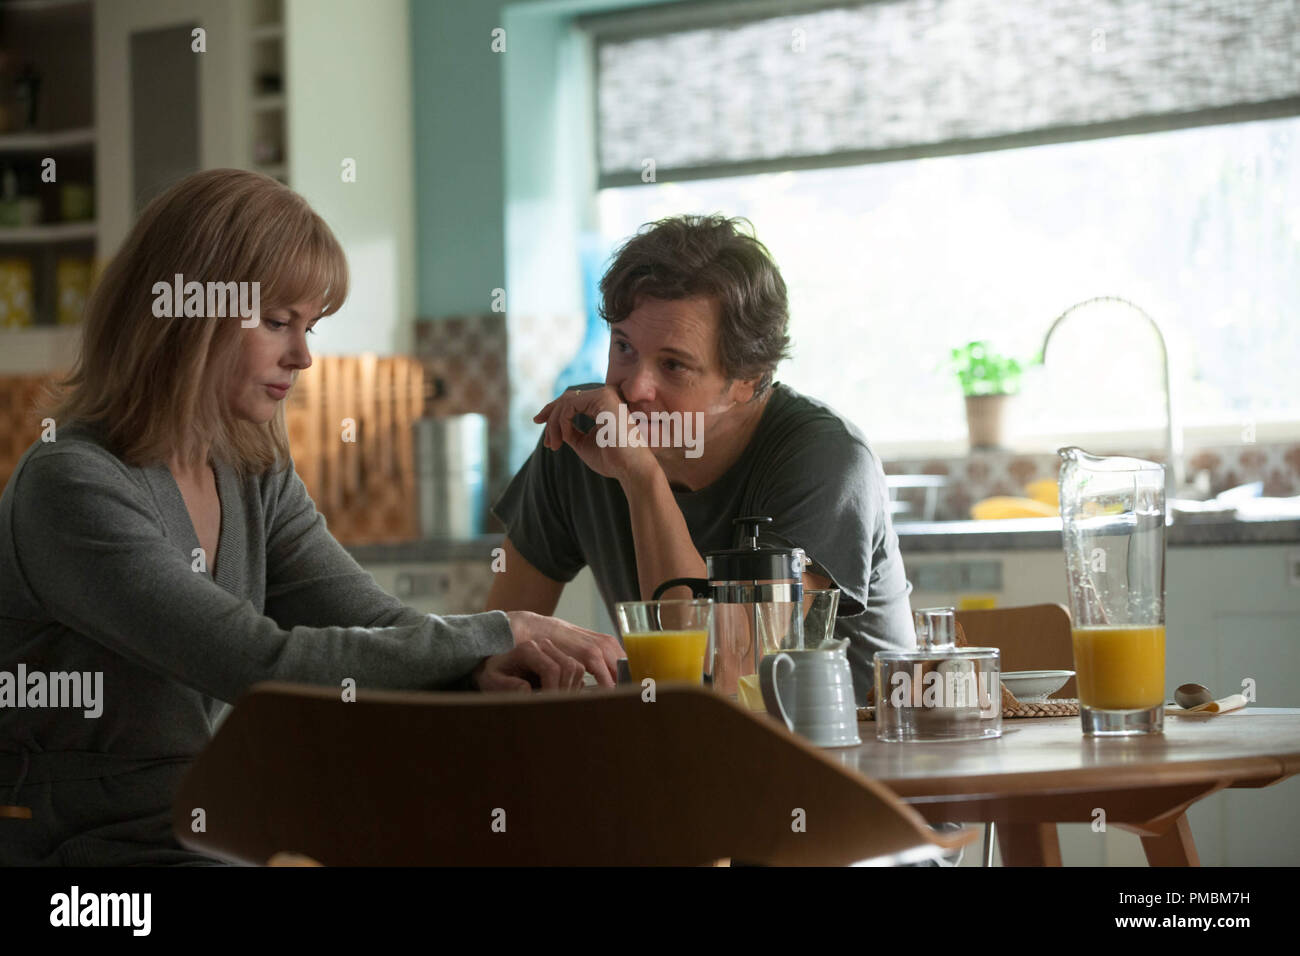 Amnesiac Christine Lucas (NICOLE KIDMAN) must decide if everything her husband, Ben (COLIN FIRTH), tells her is the truth in BEFORE I GO TO SLEEP - Stock Image